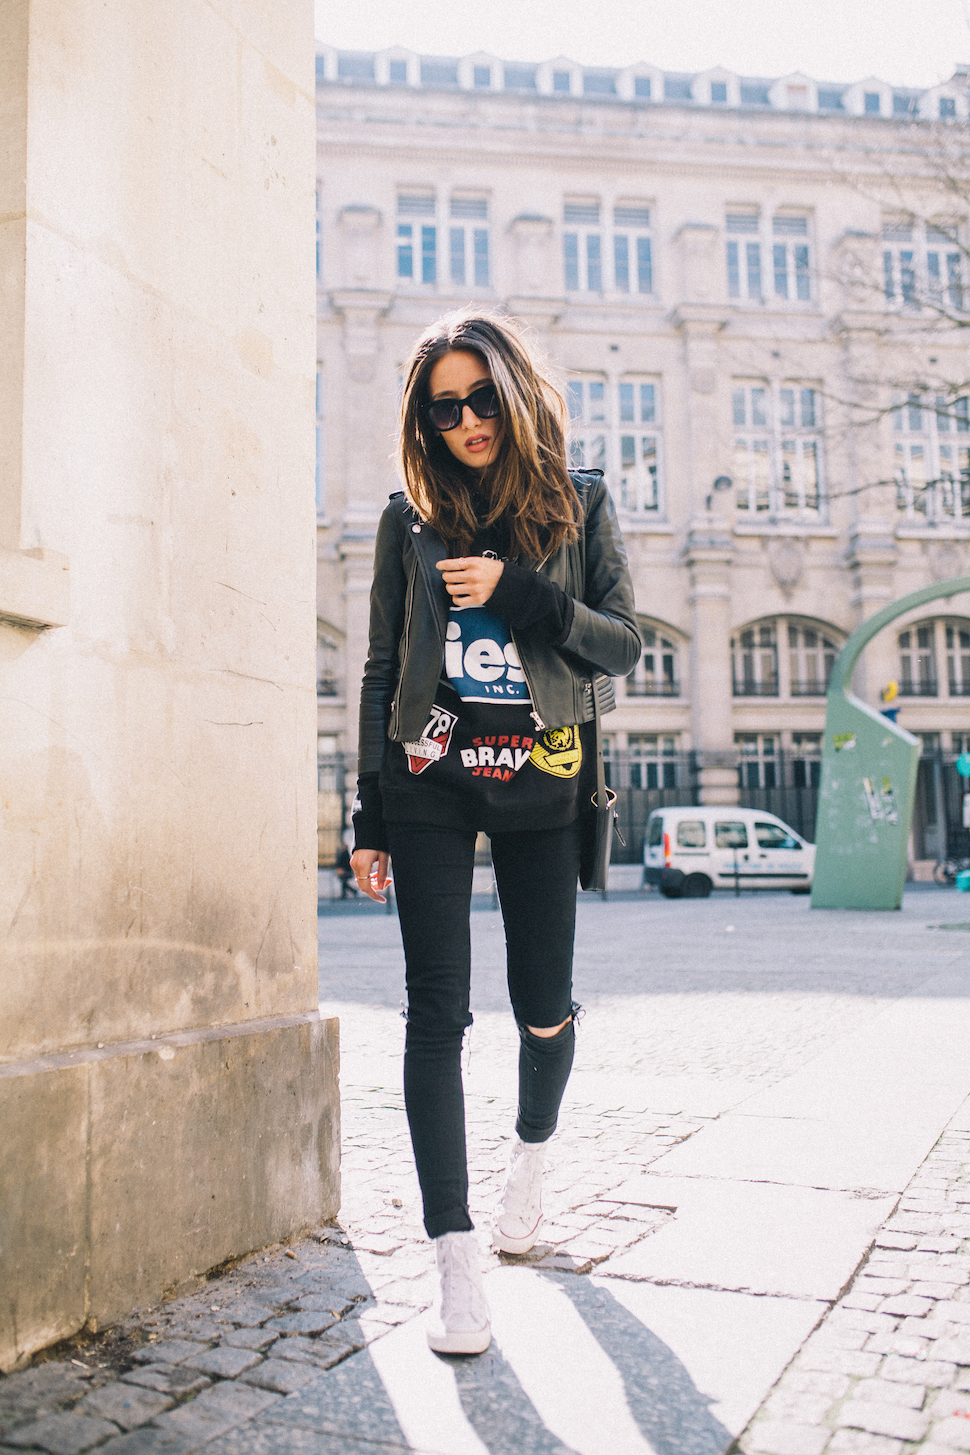 Alexandra Guerain is wearing a black graphic tee with a leather biker jacket, skinny jeans and white Converse sneakers